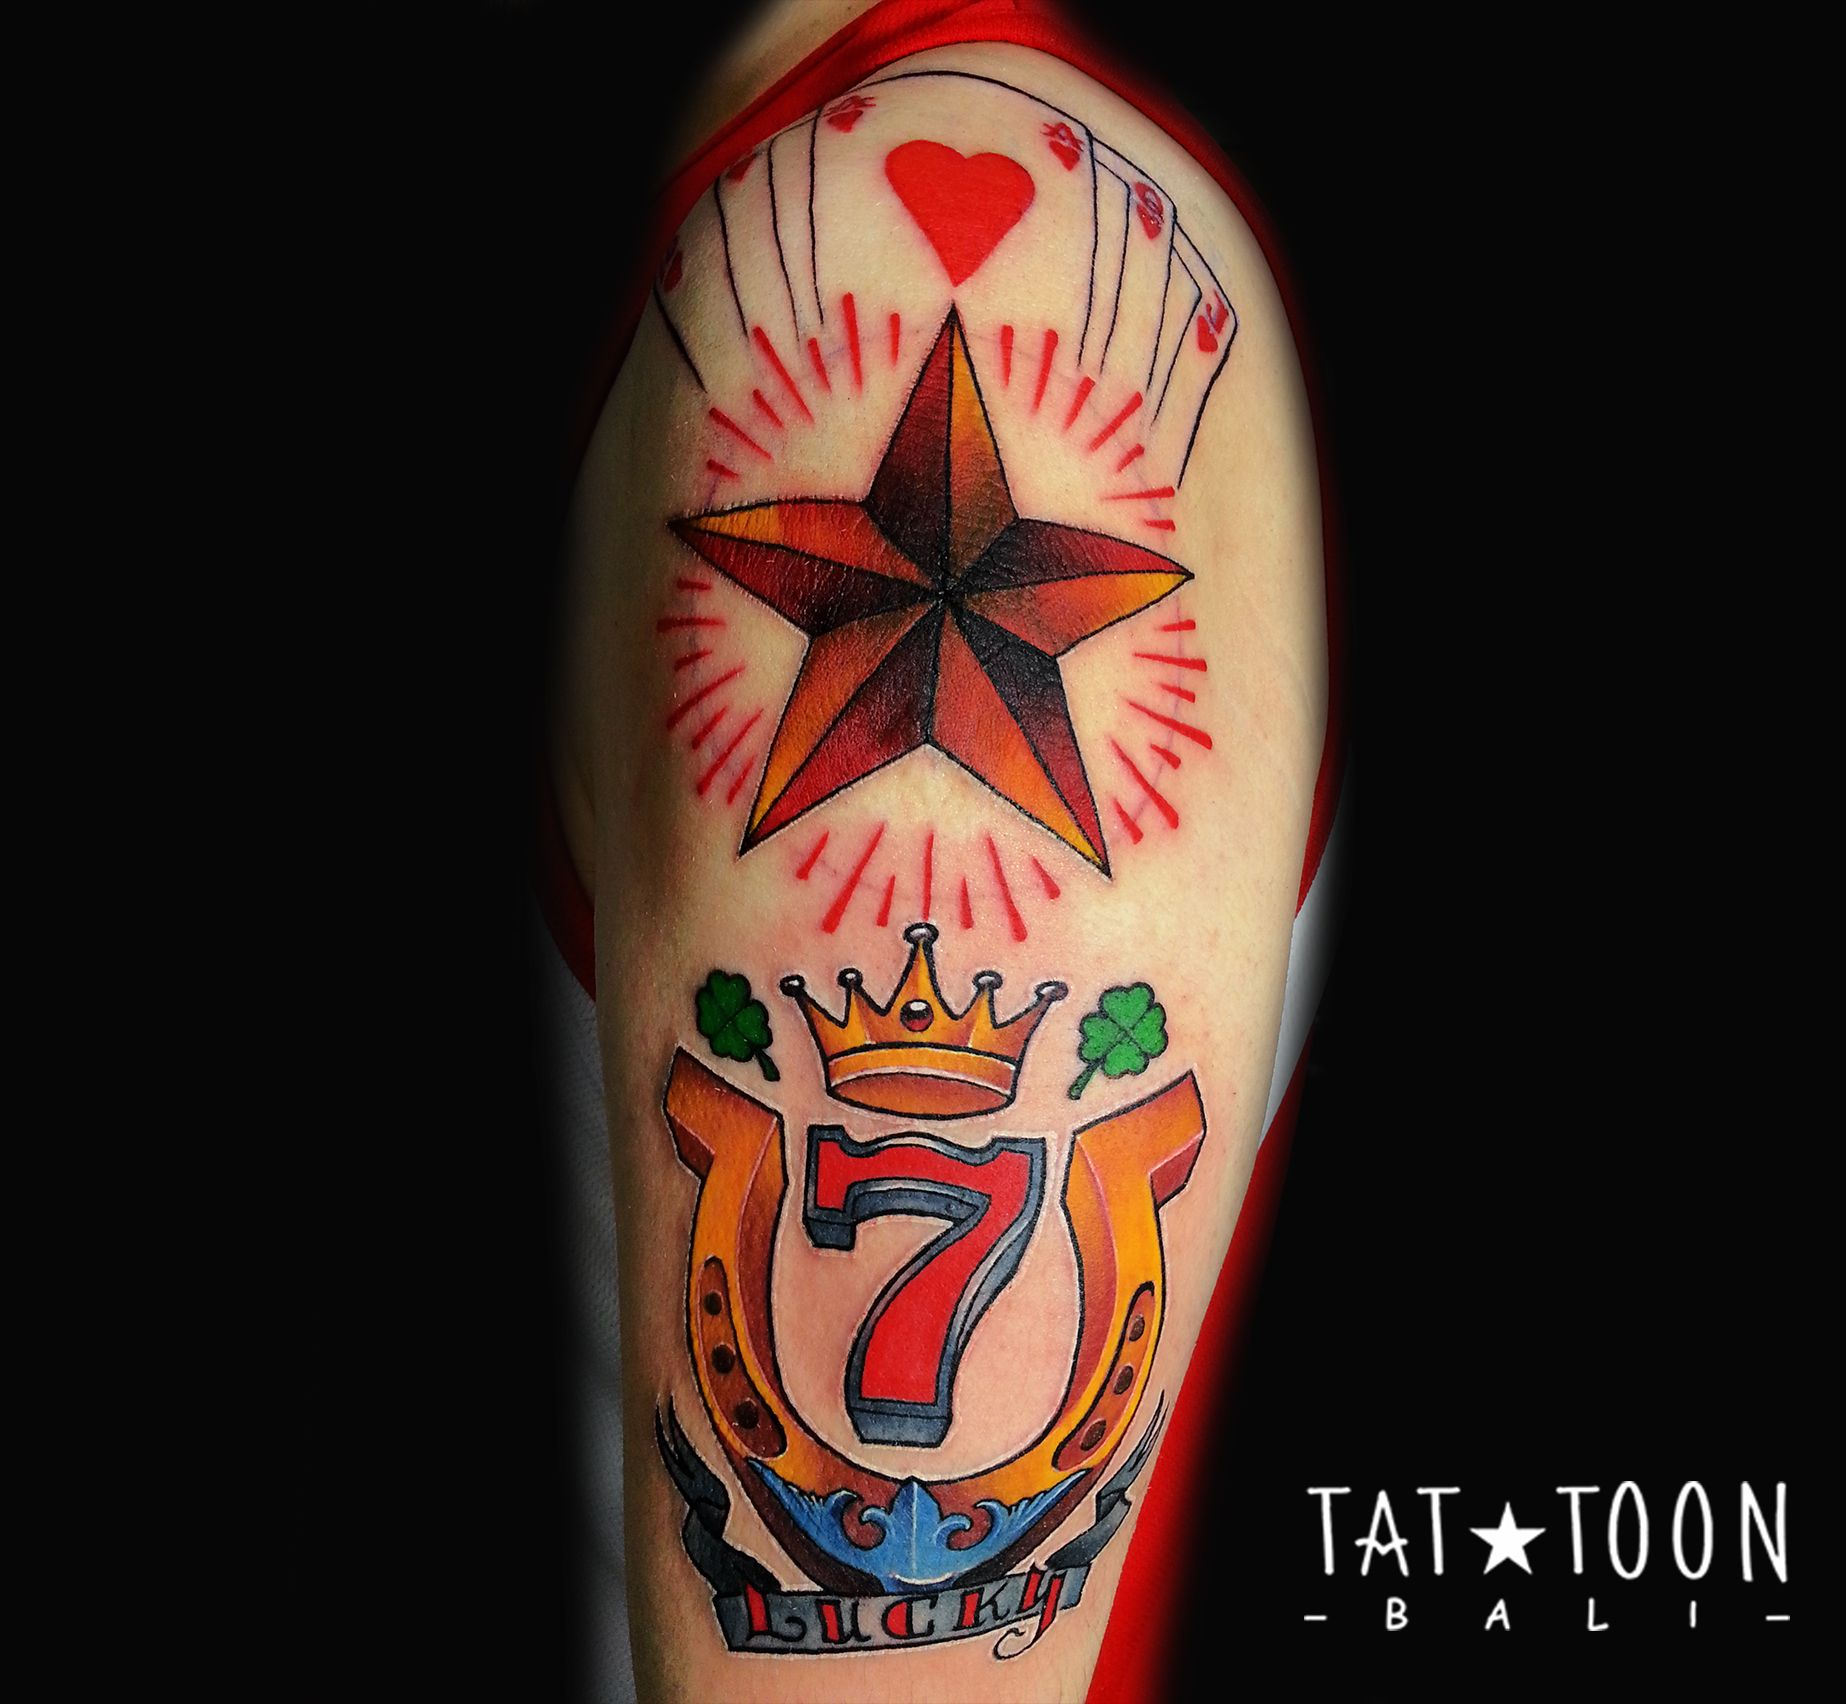 To get the best tattoo in Bali go to Tattoon. IG